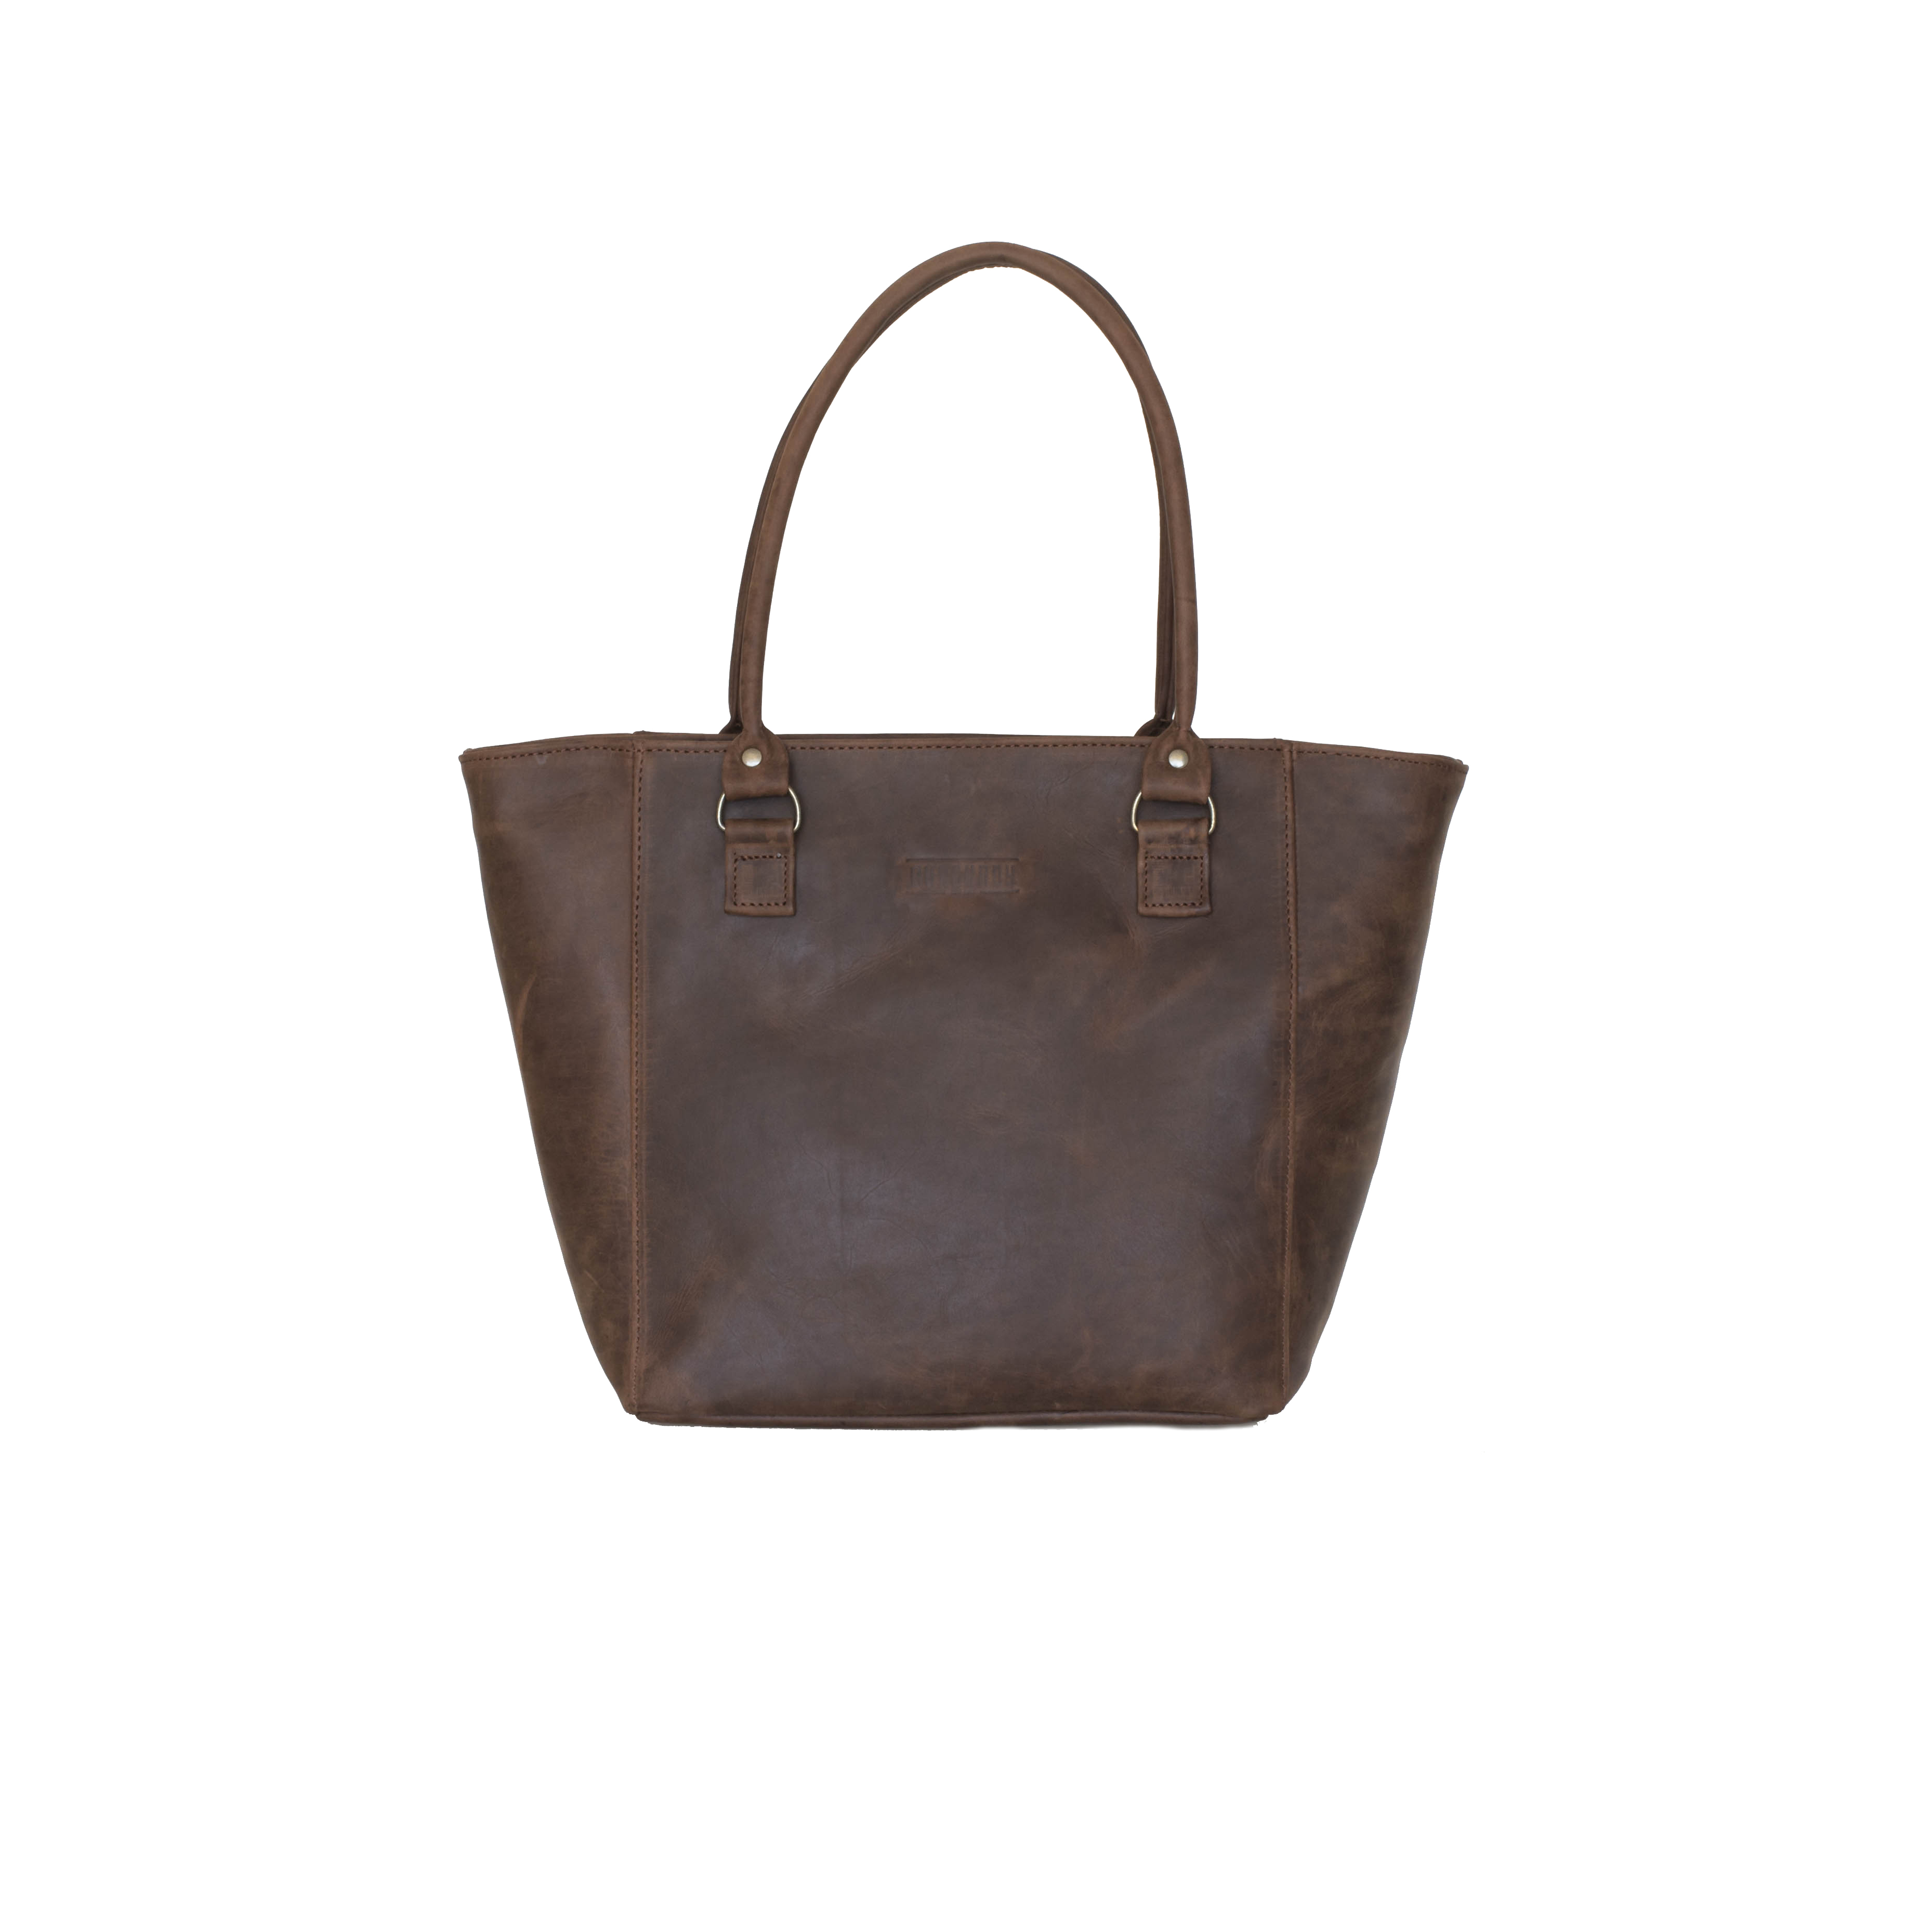 The Handbagwith its simplistic design features and smooth edgesis your perfect everyday handbag.Whether you are the average student, resolved businesswoman or certified supermom, The Handbag is essential to yourwardrobe.    FEATURES:   Light brown cotton canvas lining Interior padded foam lining for laptop protection Exterior zip pocket Interior zip pocket with leather trimmings. Two interior file pockets suitable for a mobile phone, keys and lip balm     DIMENSIONS:  H 30cm x W 45cm x D 13cm